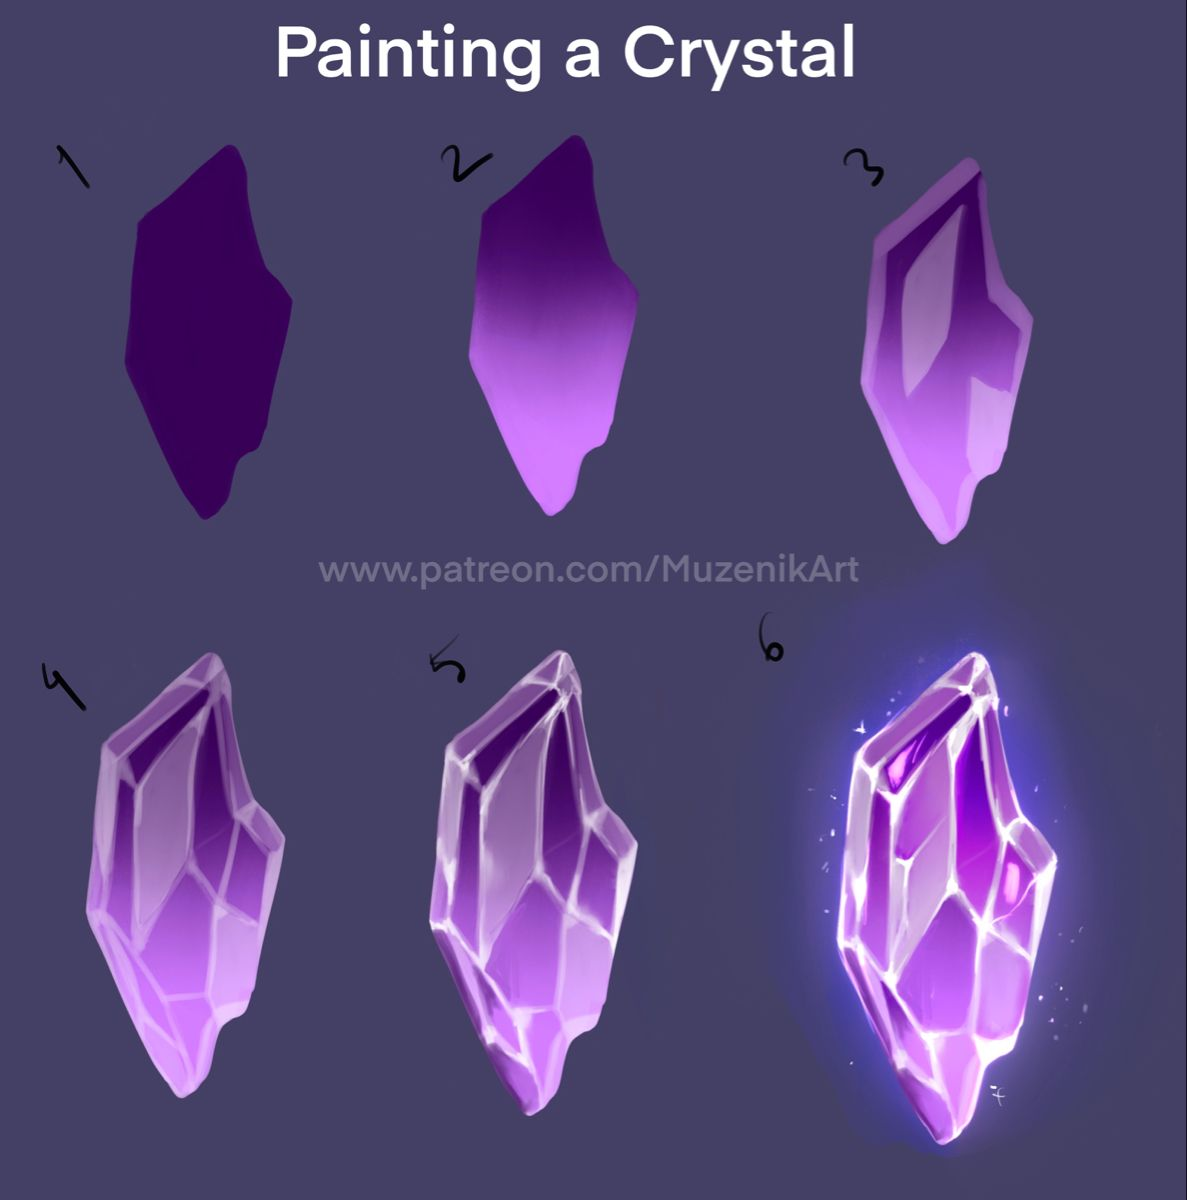 Painting a crystal